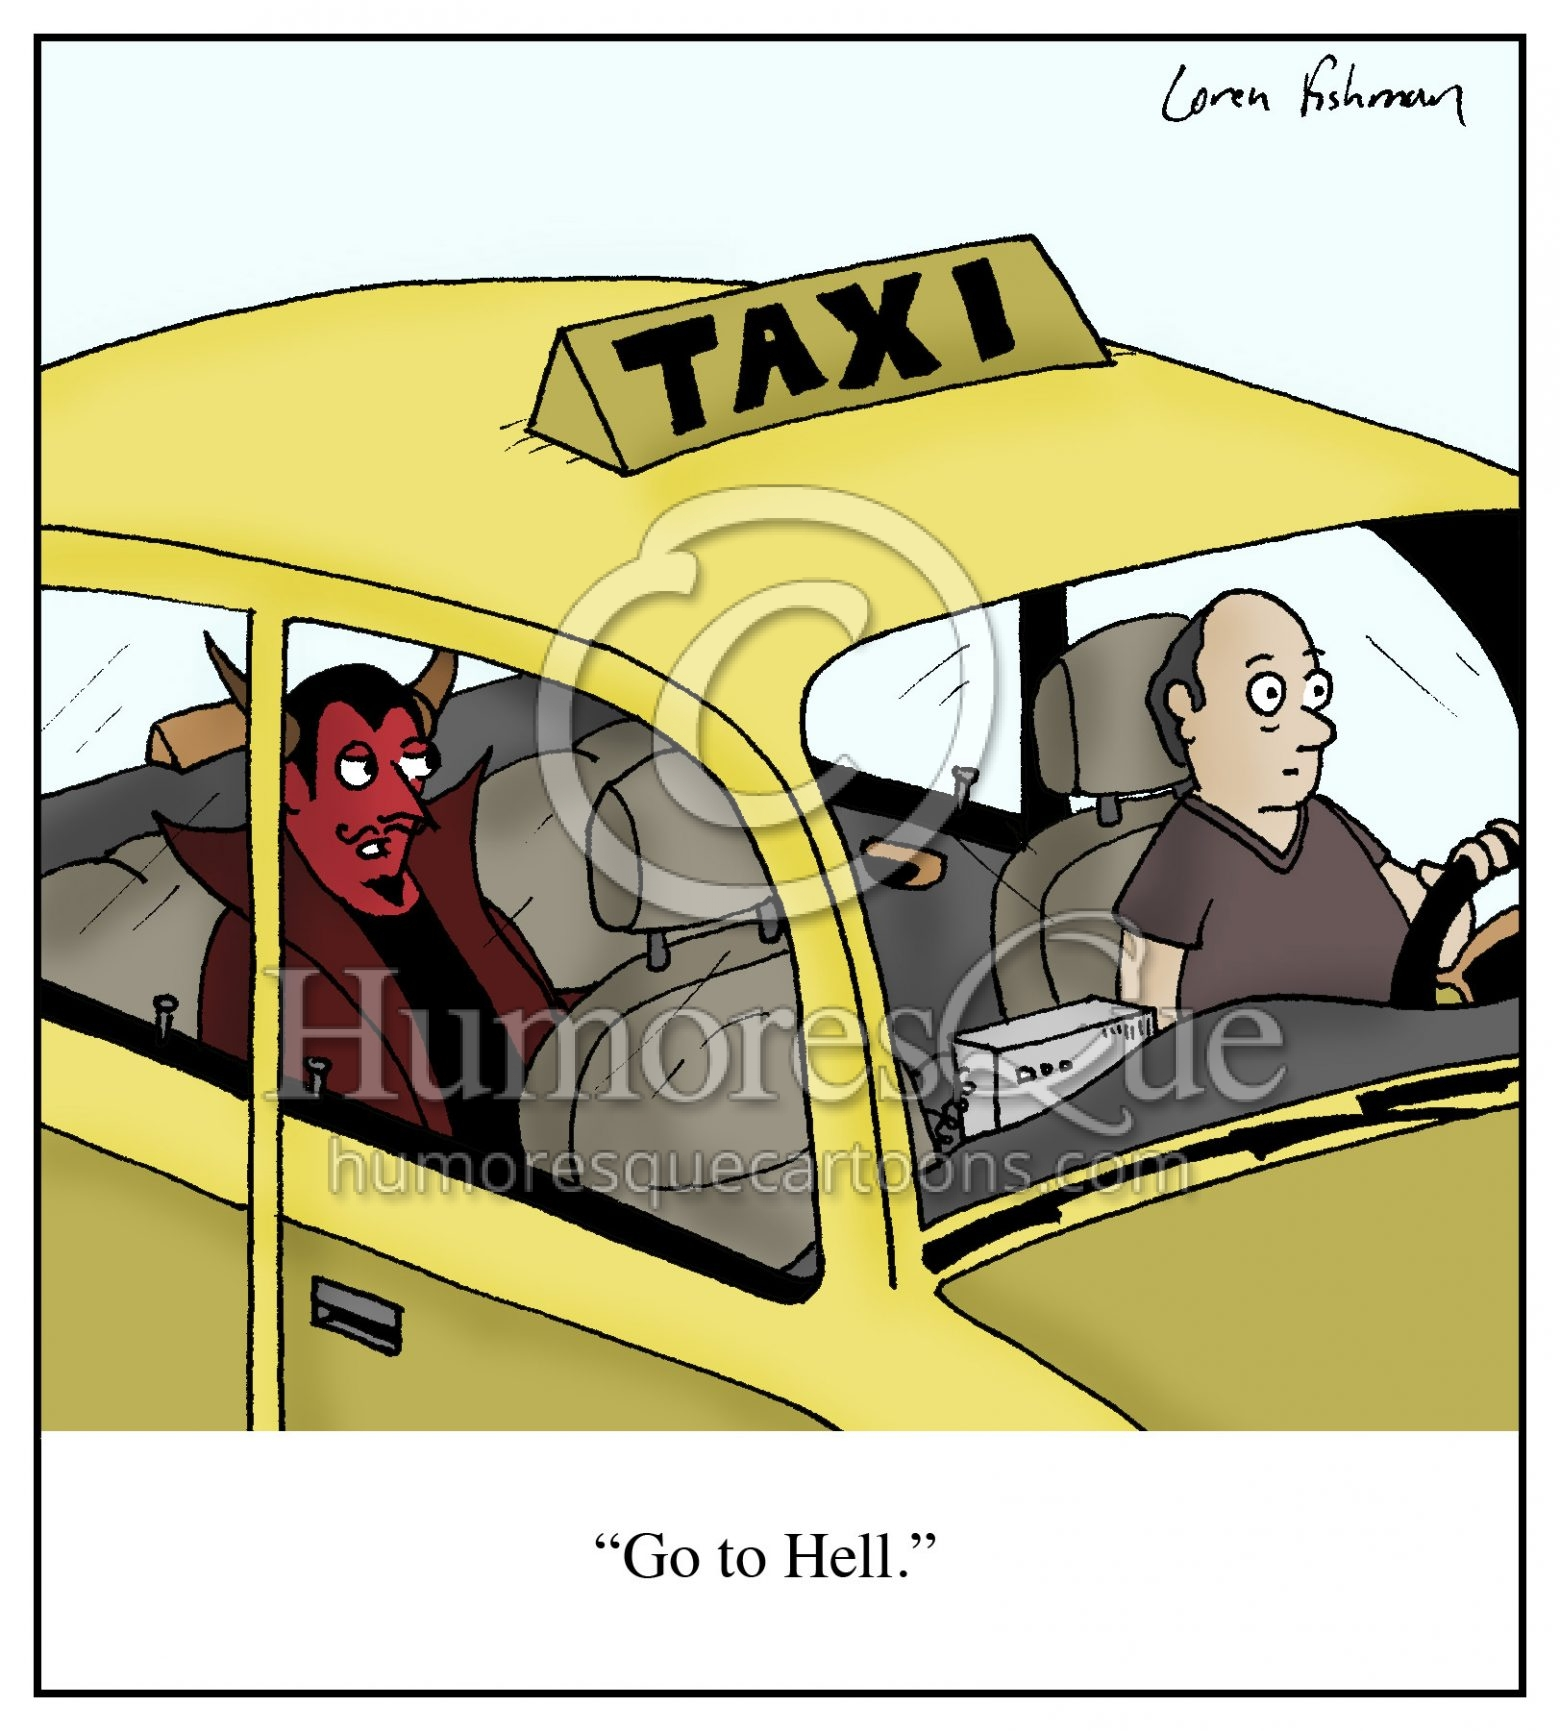 Go to Hell devil in taxi cab cartoon